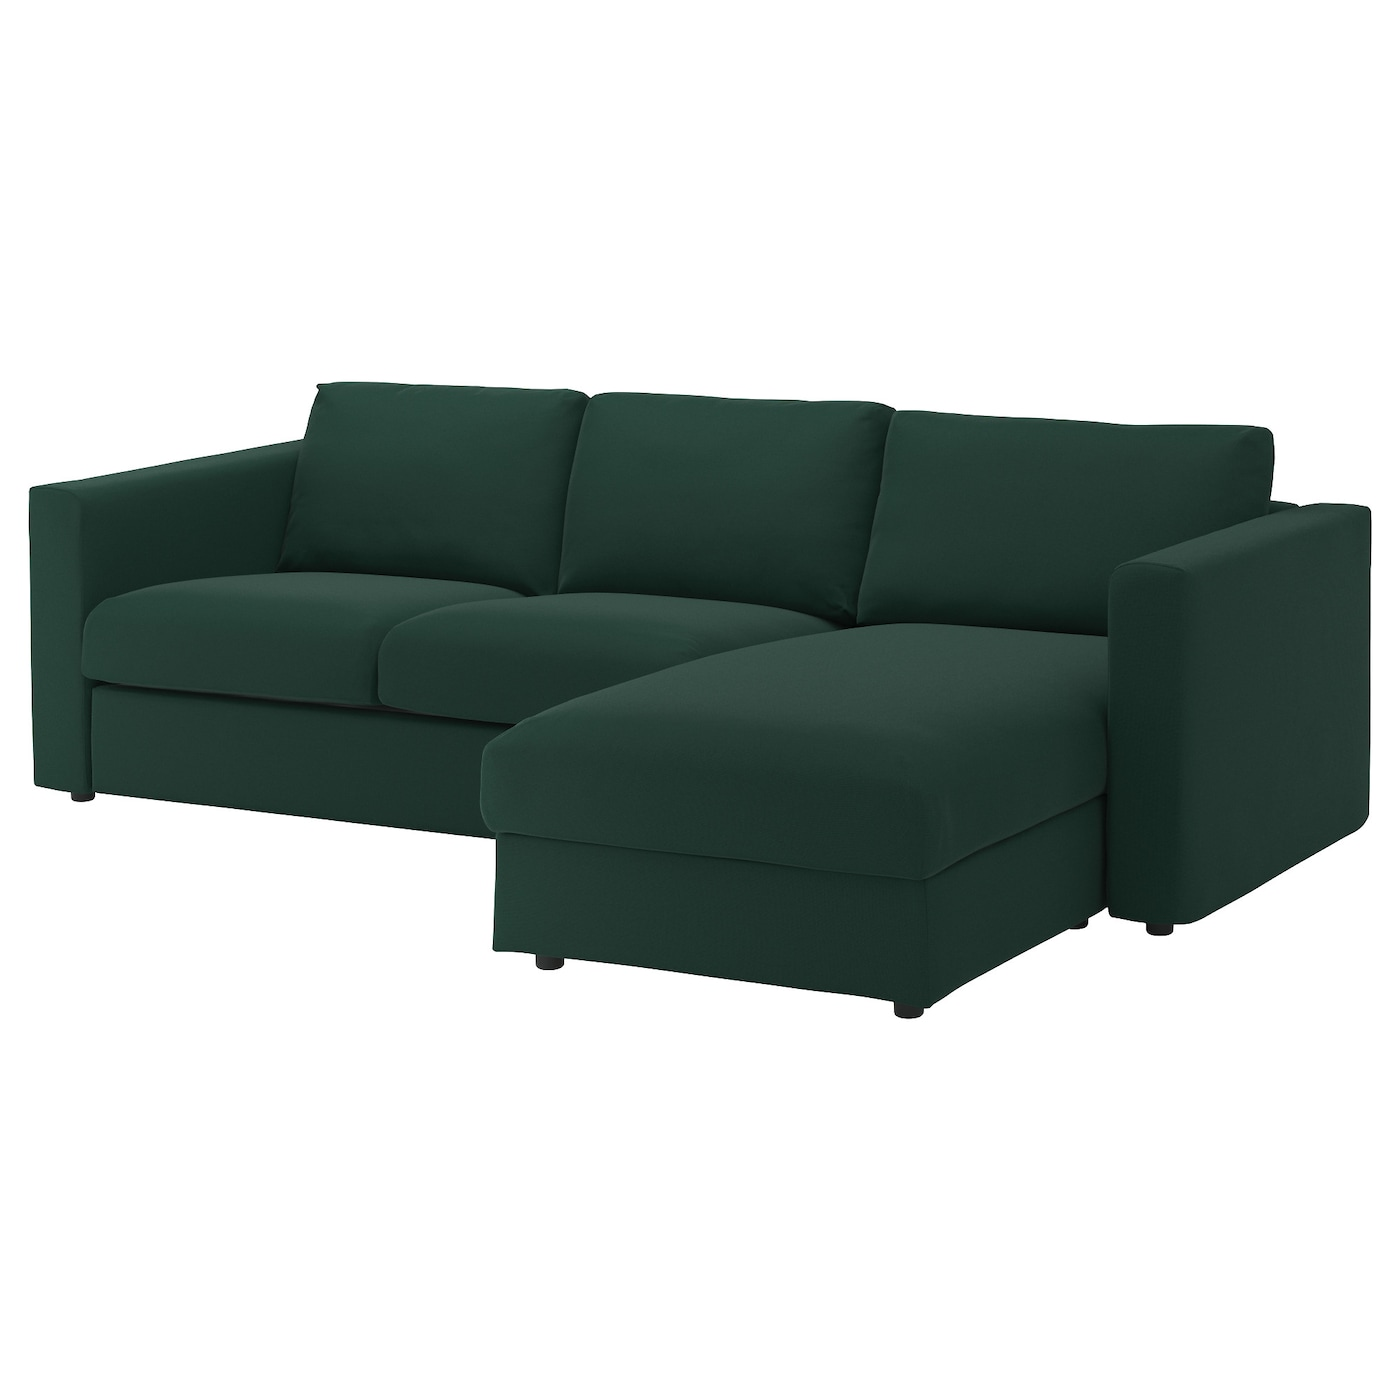 vimle 3 seat sofa with chaise longue gunnared dark green. Black Bedroom Furniture Sets. Home Design Ideas